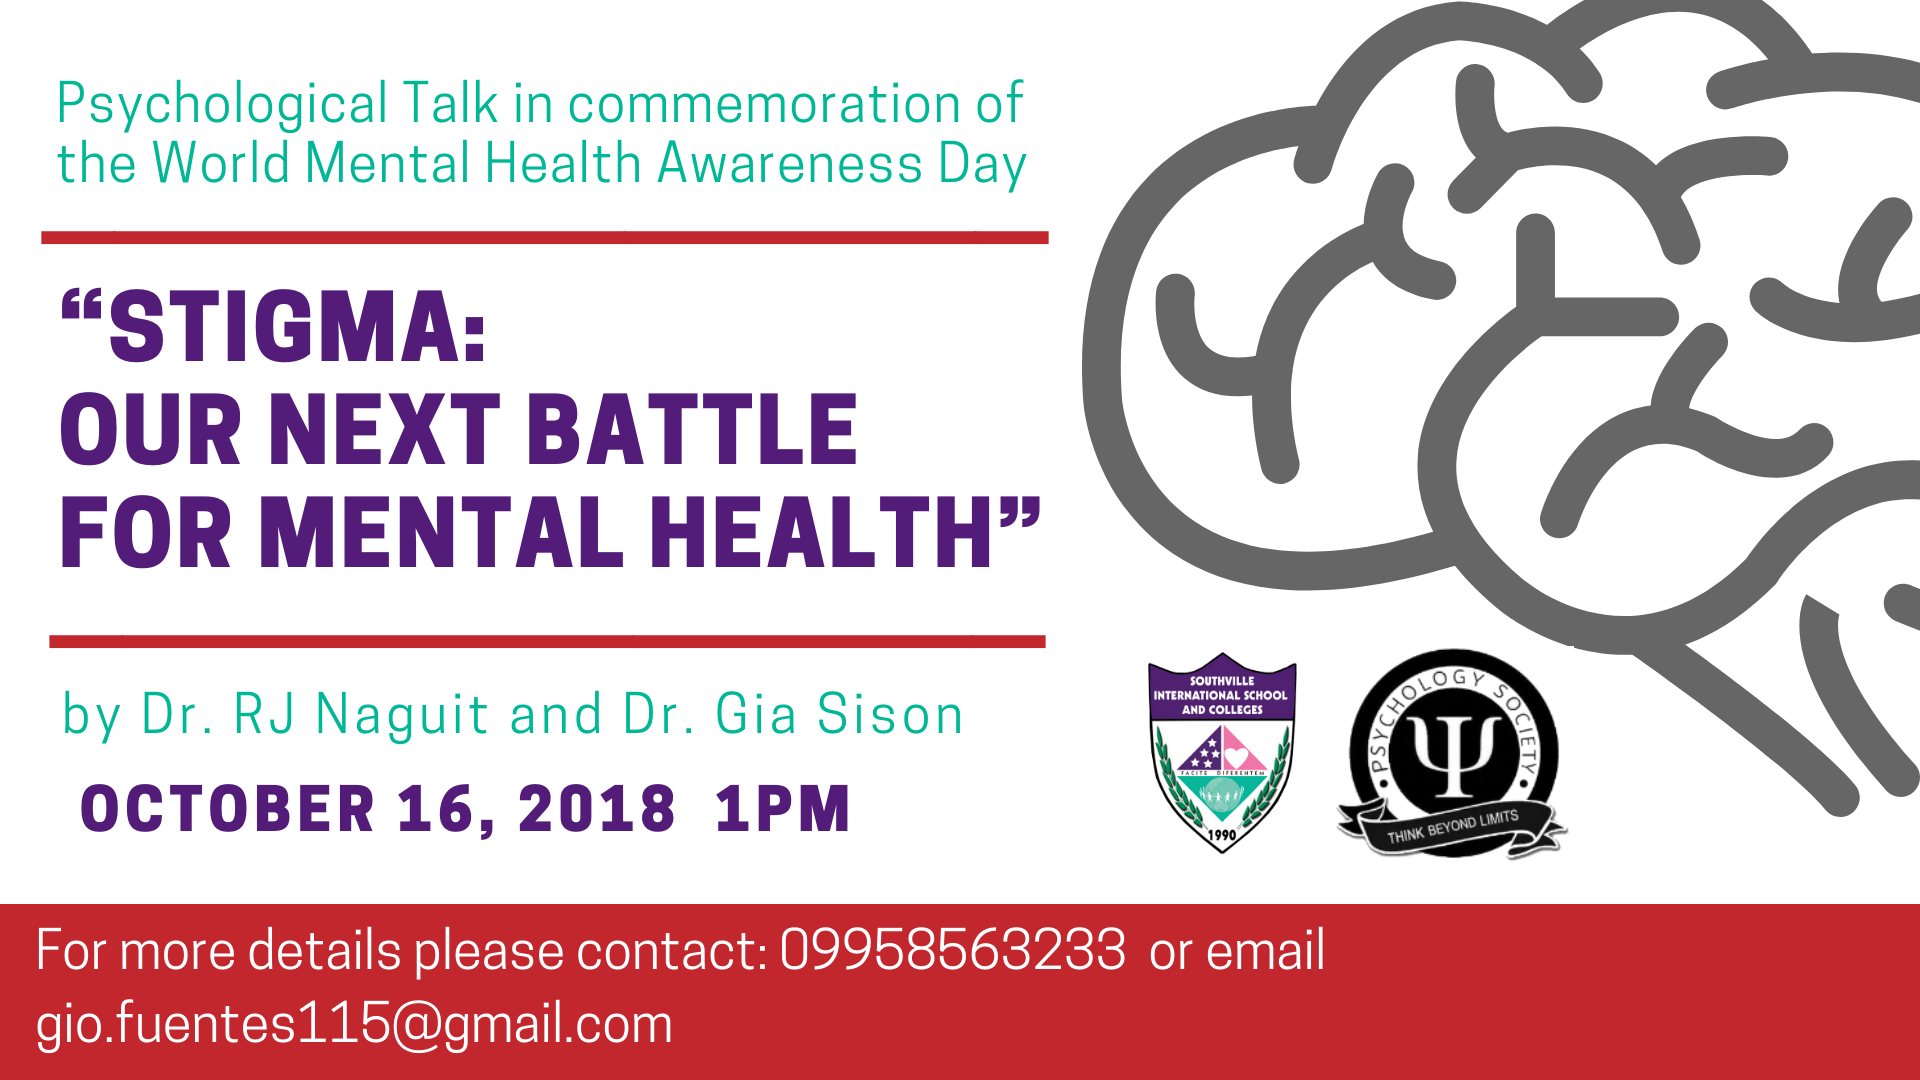 Southville College of Psychology hosts Mental Health Awareness Talk